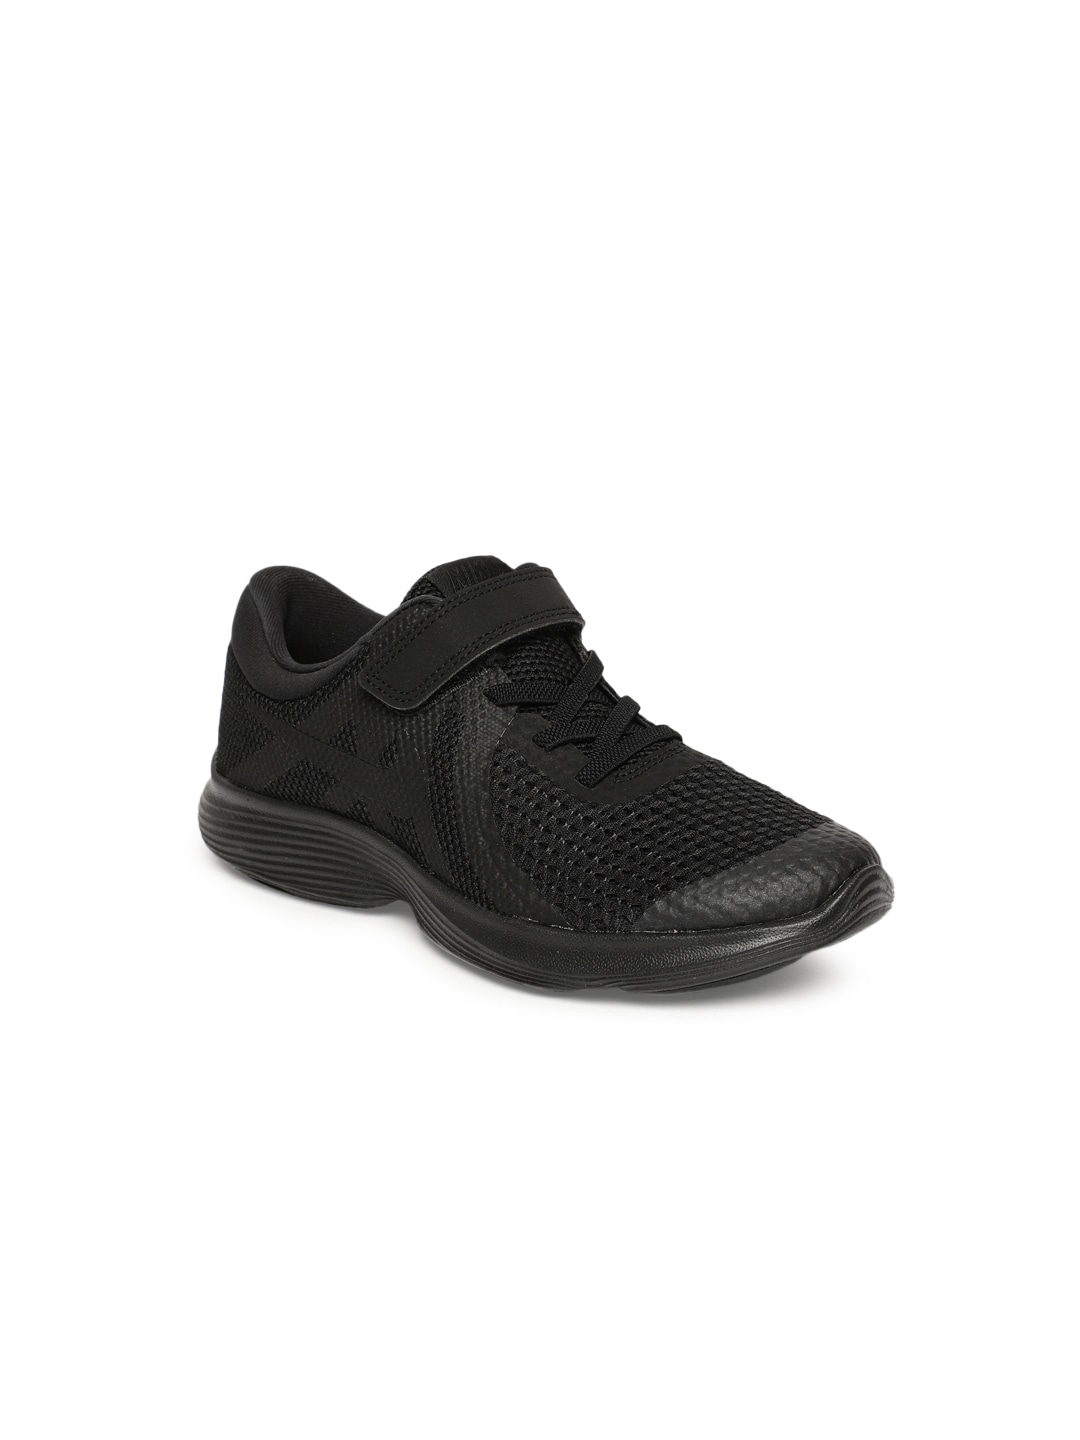 bf3e7e7bb2cf Nike Black Shoes - Buy Nike Black Shoes Online in India